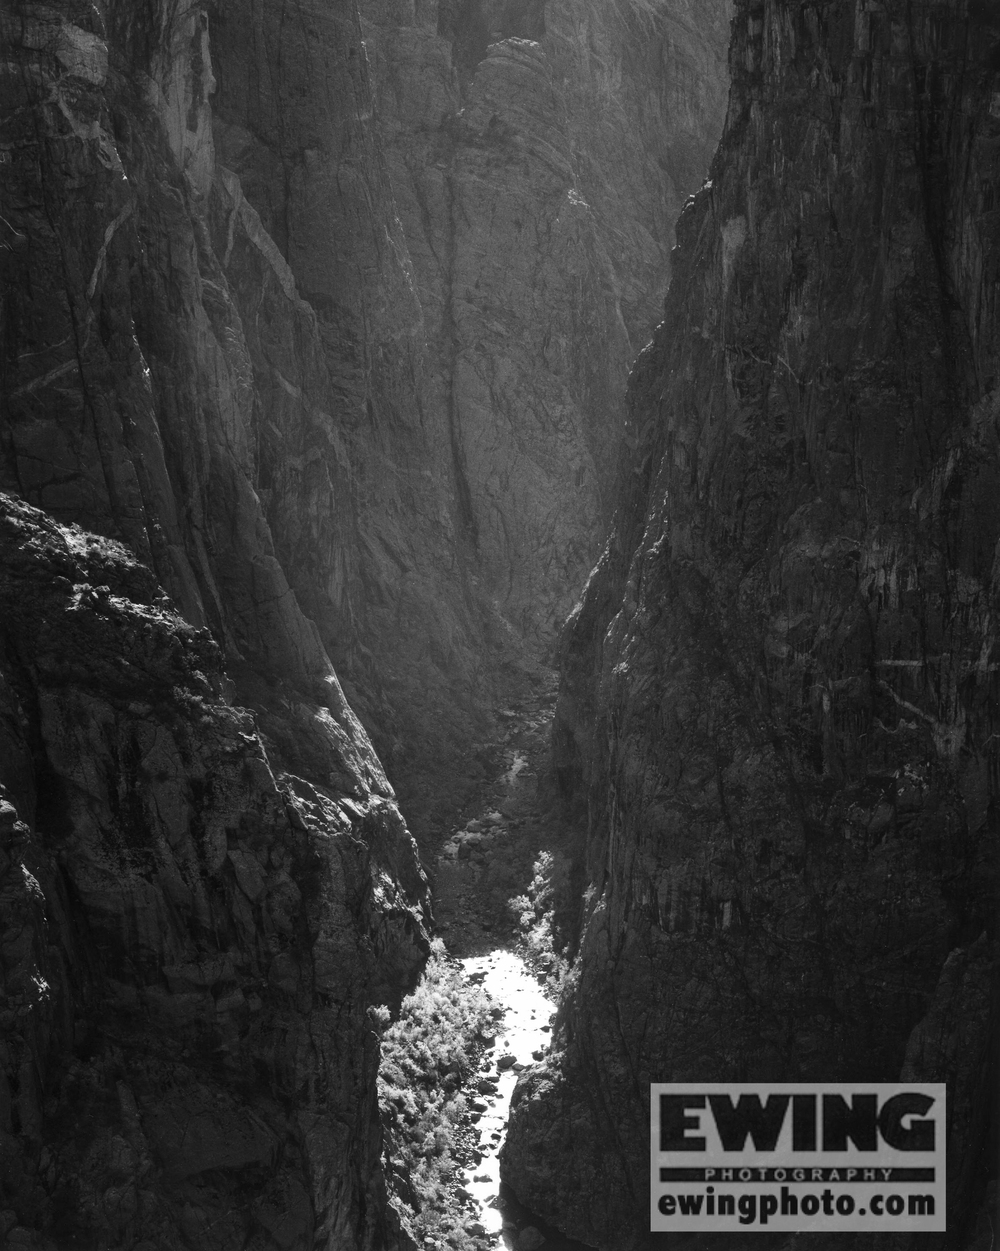 Gunnison River Black Canyon of the Gunnison, Colorado